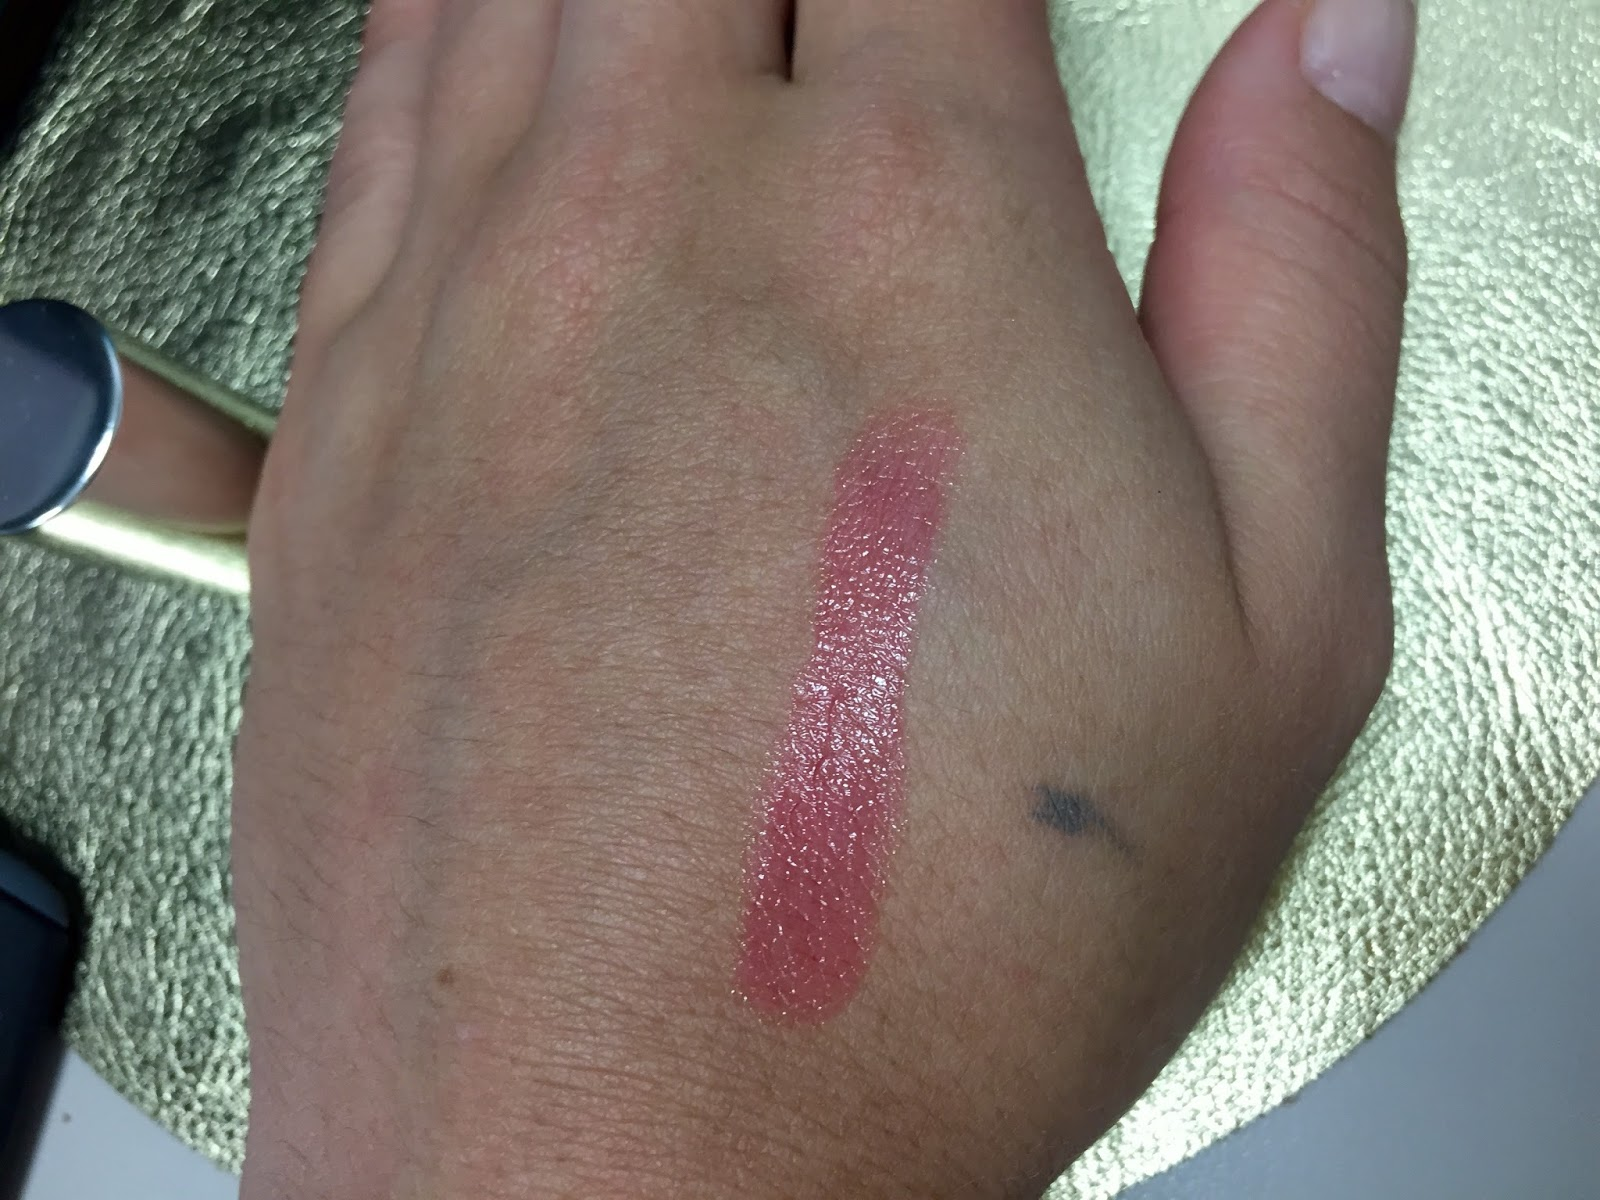 YSL Volupte Sheer Candy #04 Succulent Pomegranate Swatch